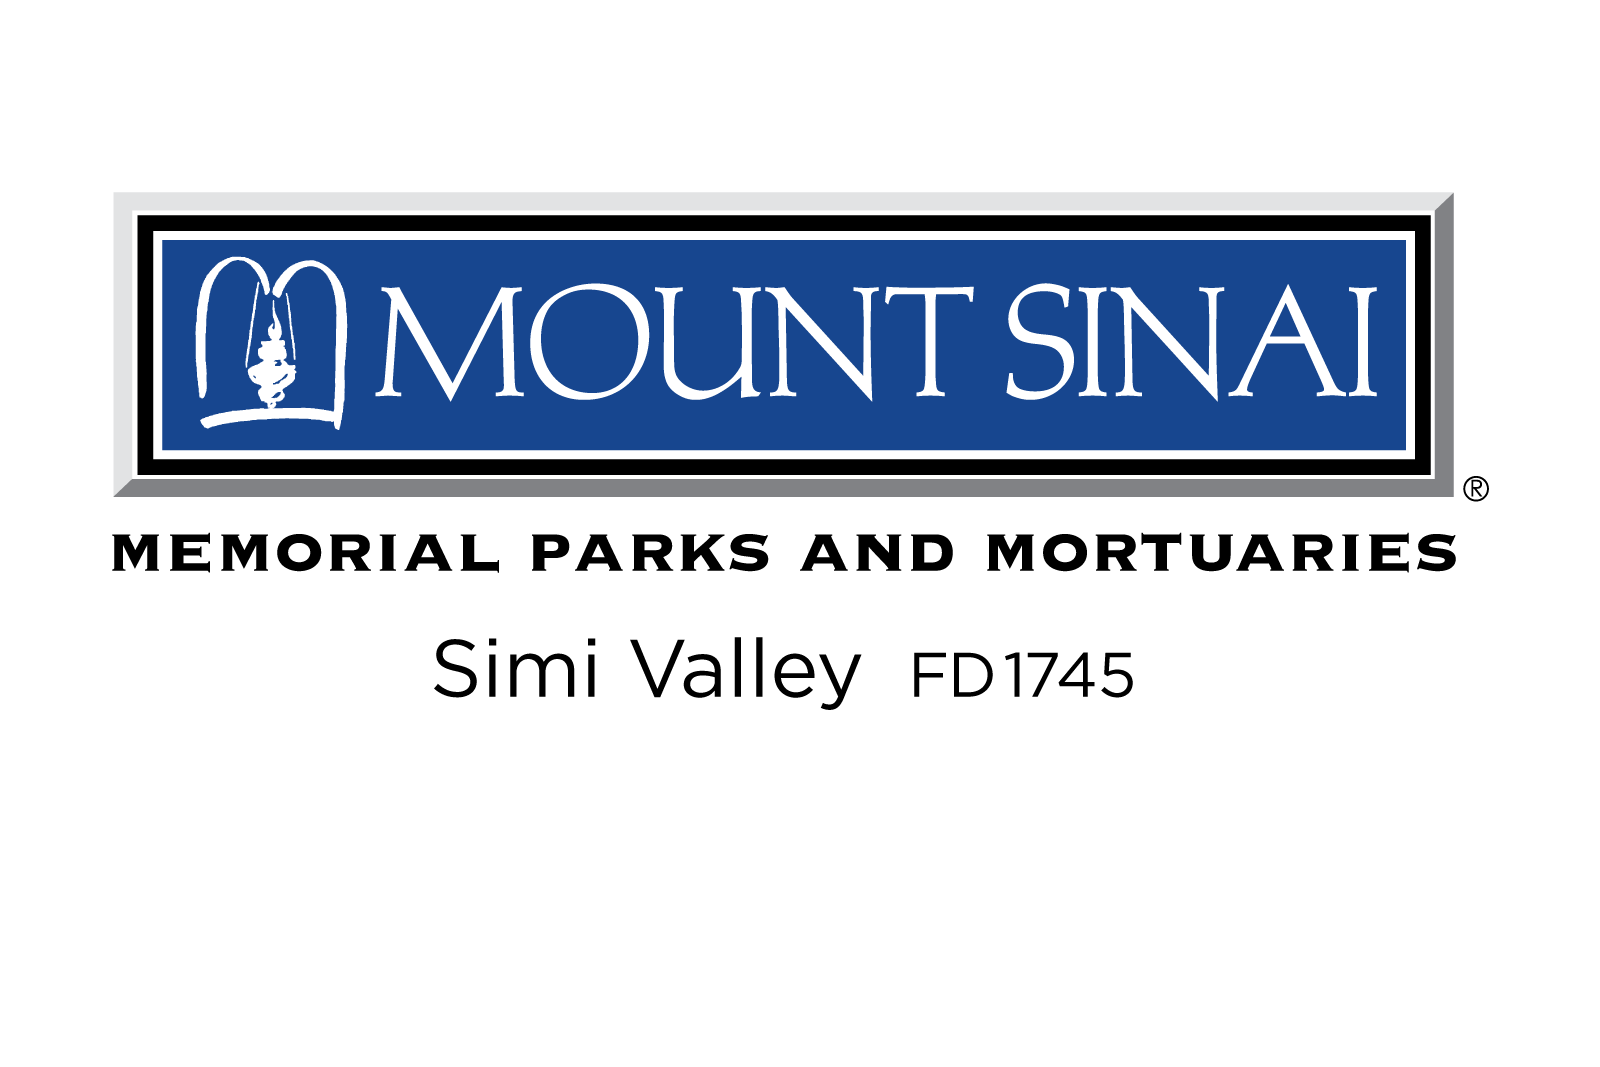 Mount-Sinai-logo-2C_new_simi